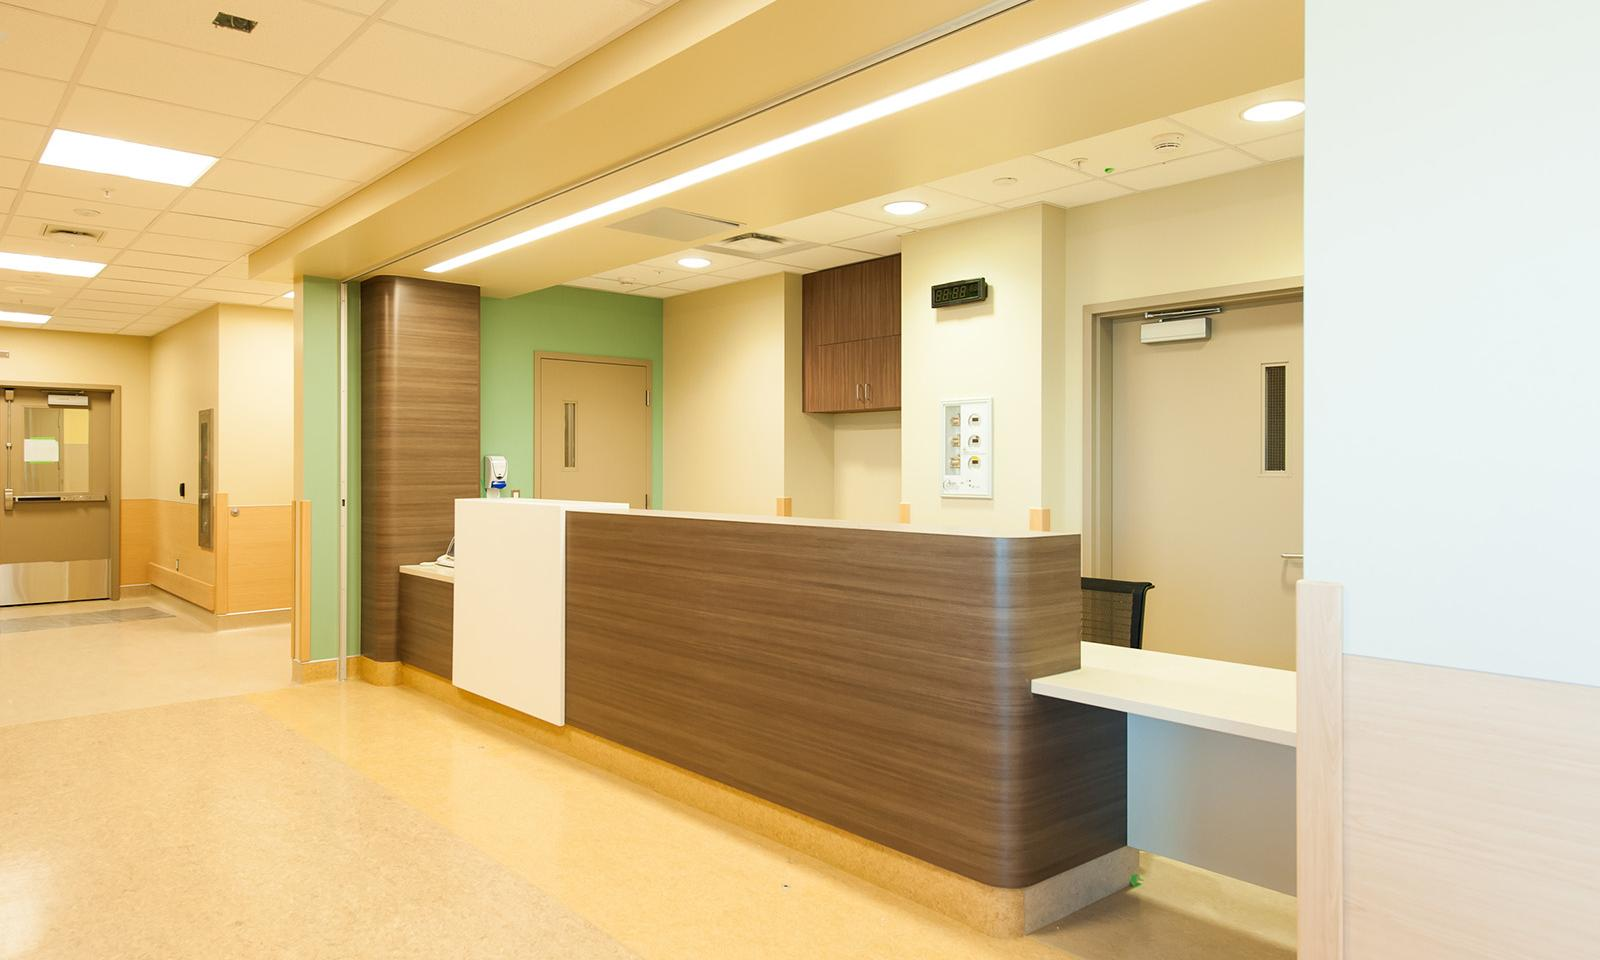 Calgary South Health. Reception desk with brown wood laminate and rounded corners. Pale green accent wall.